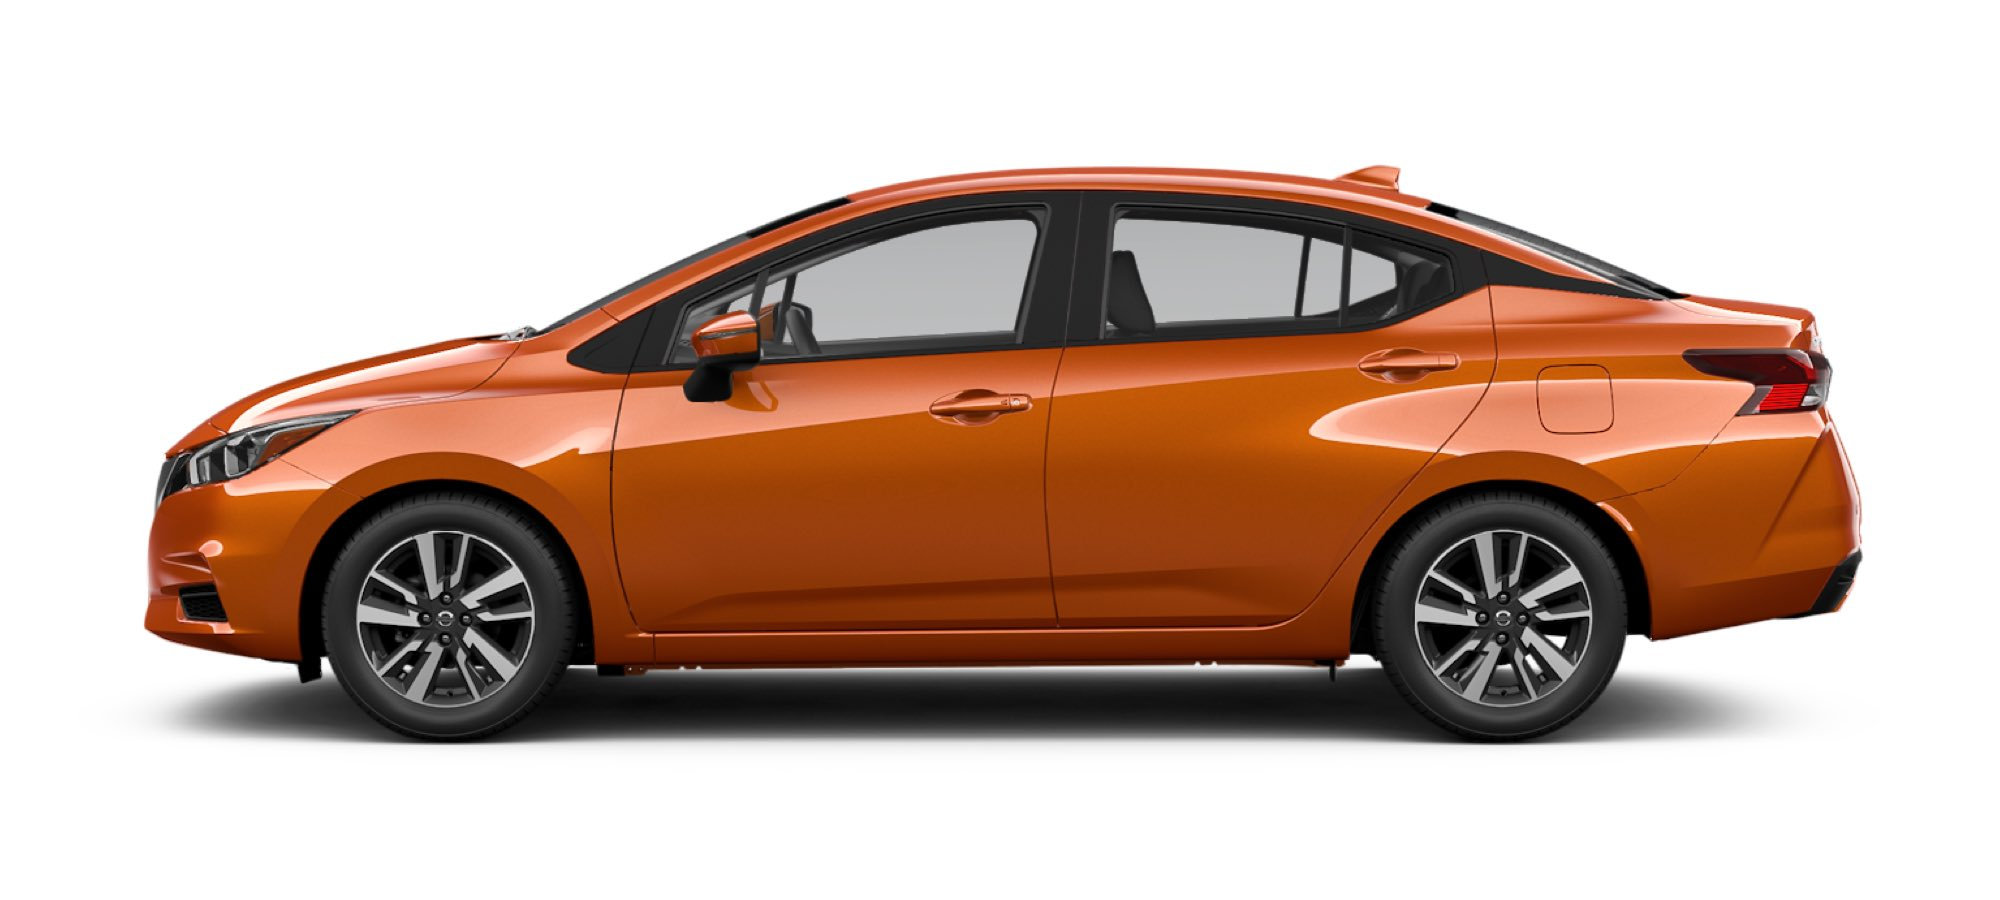 2021 Nissan Versa in Monarch Orange Metallic